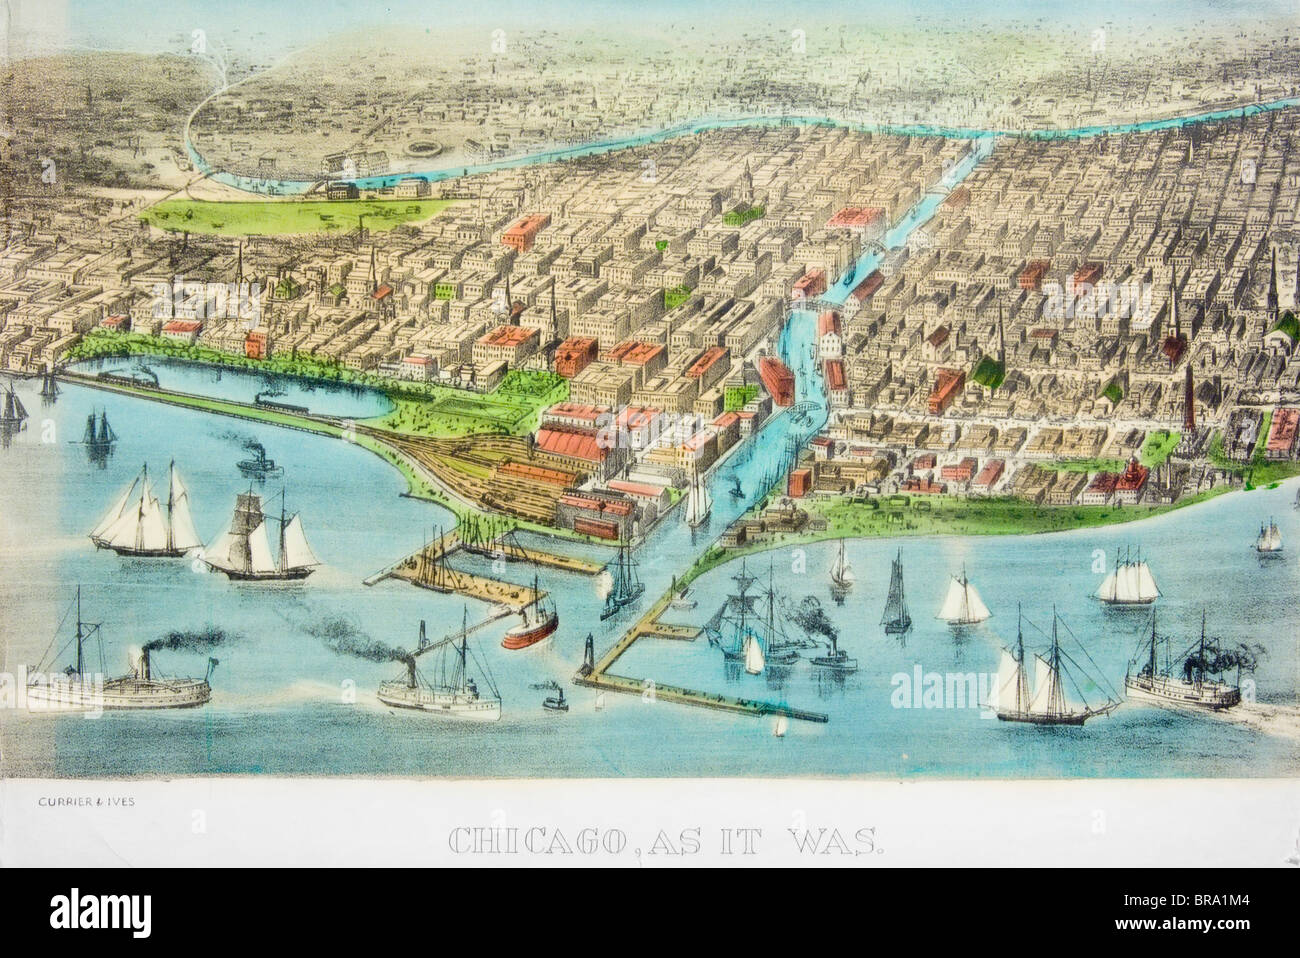 CURRIER & IVES ILLUSTRATION OF CHICAGO CIRCA 1871 - Stock Image